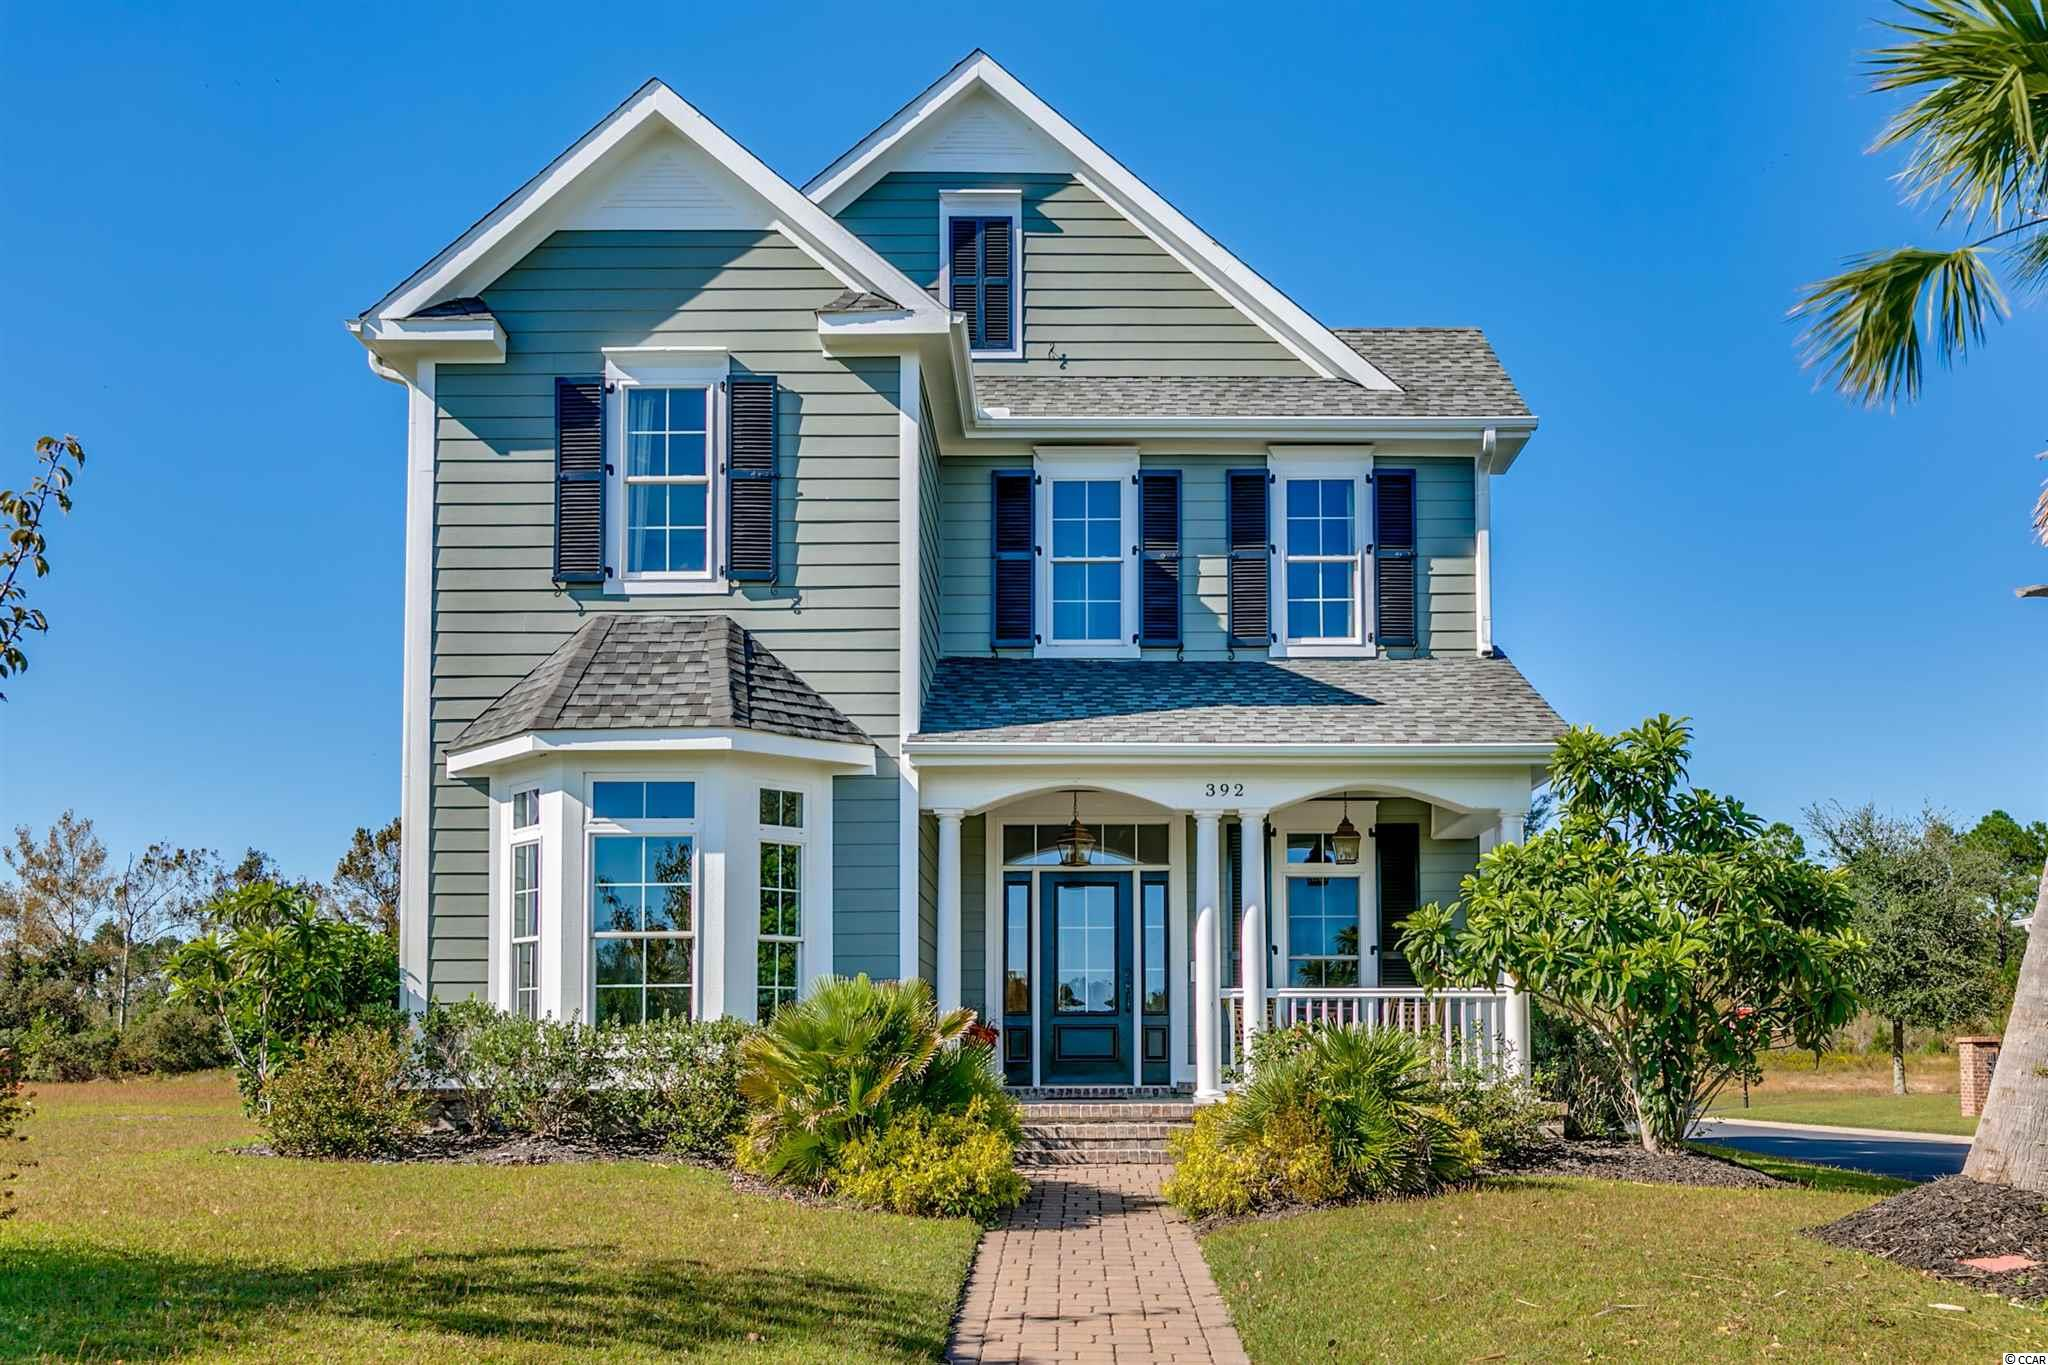 If you are looking for a high end, top quality home in a convenient gated neighborhood, look no further! No corners were cut whenbuilding this custom, one of a kind, Charleston Style beauty. This home is situated on one of only 4 oversized corner lots and isacross the street from the Intracoastal Waterway. The exterior is hardy plank and brick and offers operable shutters in the front ofthe home. Inside you will find South American Walnut hardwood floors (recently refinished) throughout all living areas andtravertine and marble flooring in the laundry room and baths. Bedrooms offer carpet. The layout and flow of this home isexceptional with 10 ft. ceilings on the first floor and 9 ft. on the second floor. From the front door you walk into a beautiful entry/sitting area. To the left you will find a large formal dining room that transitions to the kitchen with a beautiful wet bar/Butlers pantry.The kitchen overlooks the breakfast nook and great room and has solid wood cabinets with slam proof drawers, SS appliances,and beautiful granite countertops. The great room offers a fireplace, surround sound and many recessed lights. The Carolinaroom is also on the main living level with french doors leading to the private courtyard. The courtyard is fenced-in with gas line tothe grill and electricity for an outdoor fountain. The separate first floor laundry room offers custom solid wood cabinetry and graniteas well as a sink and an abundance of cabinets. Above the garage you will find an oversized bonus room/4th bedroom with 1/2bath. A second staircase will lead you to the the Master Suite and 2 additional nice sized bedrooms. There are 3 closets in theupstairs landing as well as a linen closet in the 2nd full bath. The master suite is complete with his and hers custom closets ( allclosets in the home are custom), a floor to ceiling travertine shower and large jacuzzi tub. The second bath offers high endfinishes as well, including a tub with tiled backsplash, granite, travertine floors and a double sink. Some additional features include2 ft. raised slab foundation, Baldwin hardware and locks, 2 piece crown and 2 piece base moldings, 8 ft. solid core doors, Intercomsystem, security system and irrigation system. The gated neighborhood has only 99 homesites and offers a gazebo overlookingthe Intracoastal Waterway as well as a boat launch and private boat storage. LOT NEXT DOOR IS AVAILABLE to add a large yard, or addition to the home. Floor plan as well as landscaping plans for additional lot are also available. Please inquire for more information.